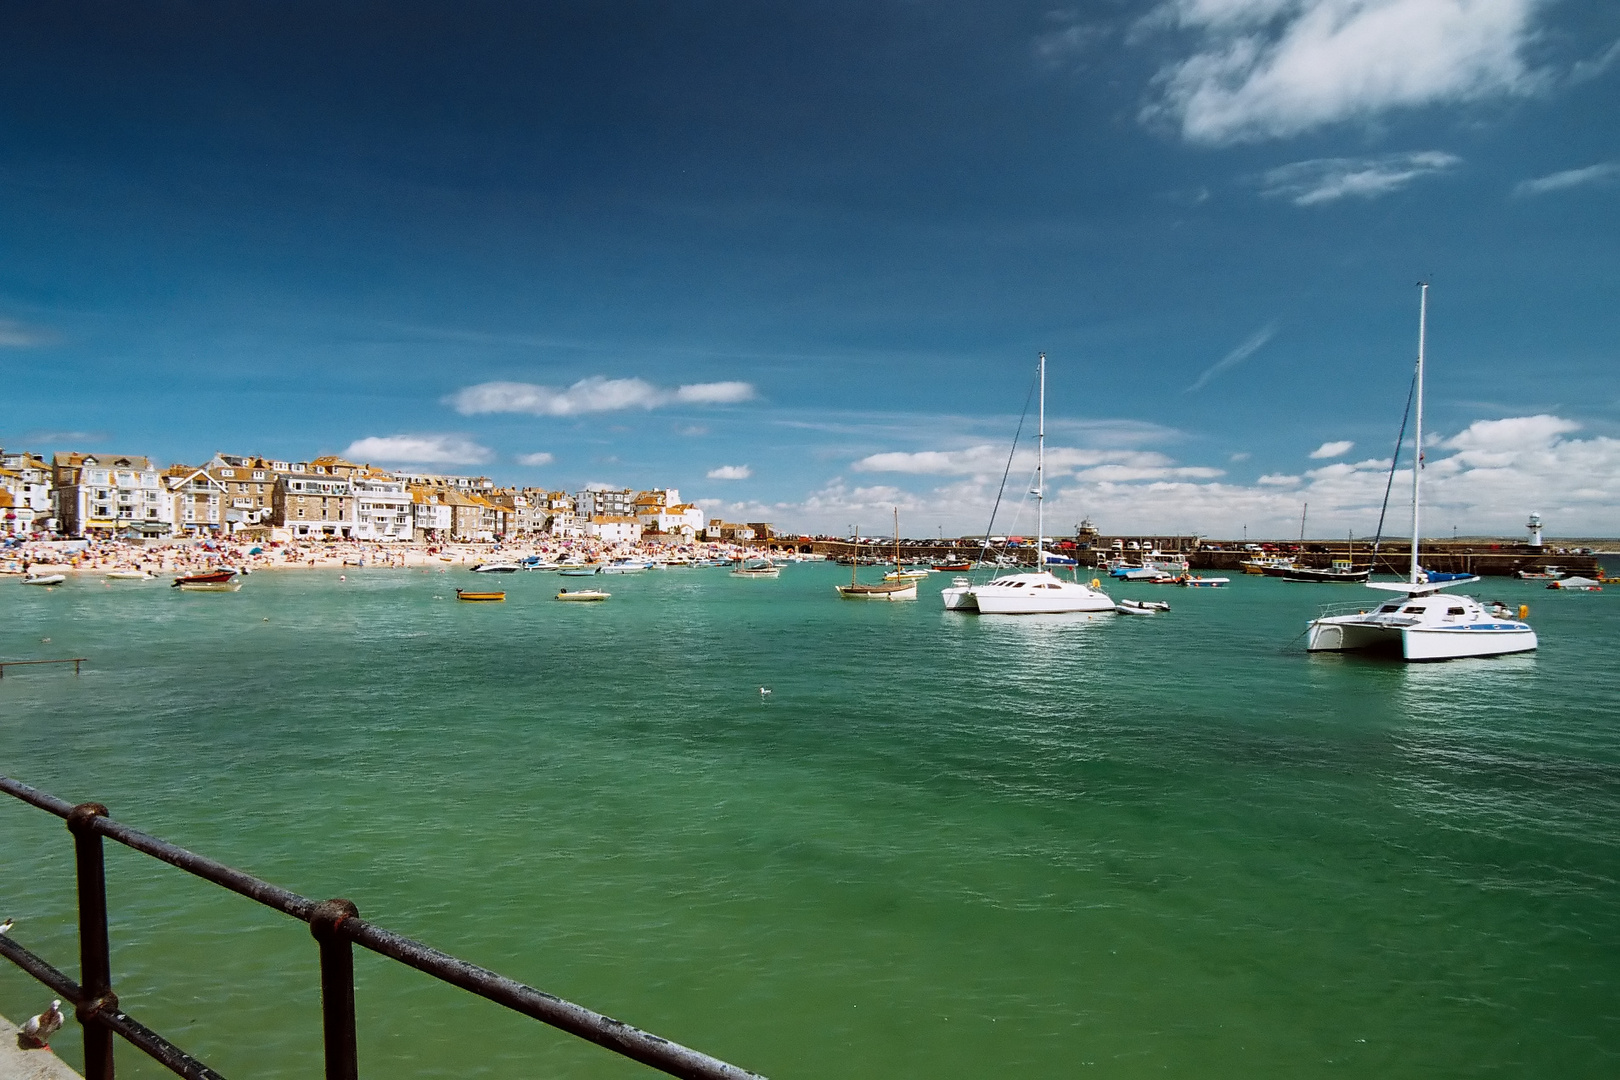 [St. Ives Harbour]